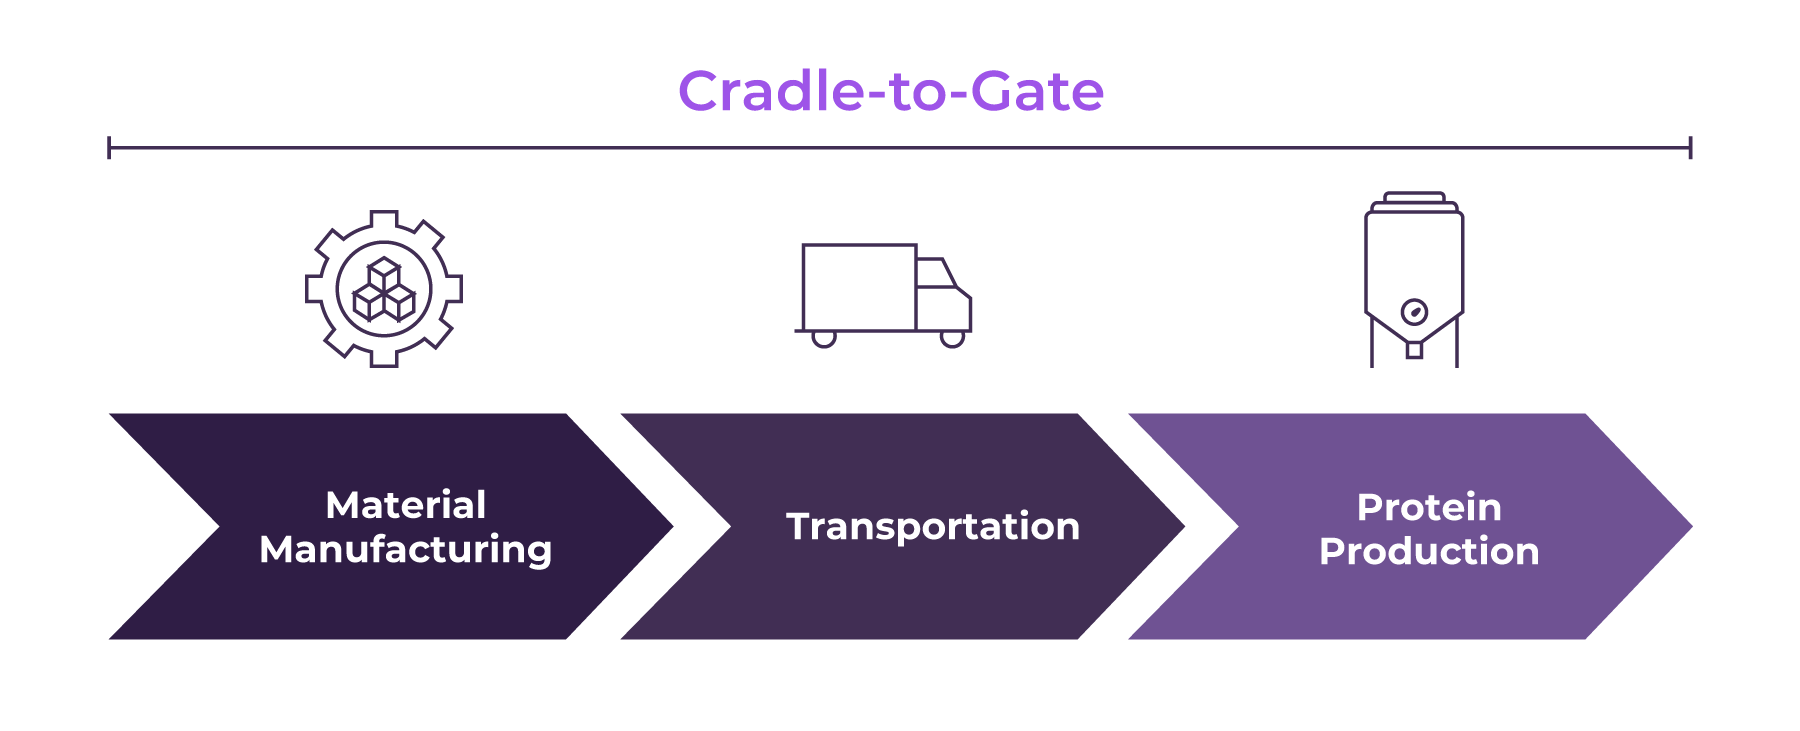 Cradle to Gate includes raw material extraction and manufacturing, transportation, and production methods